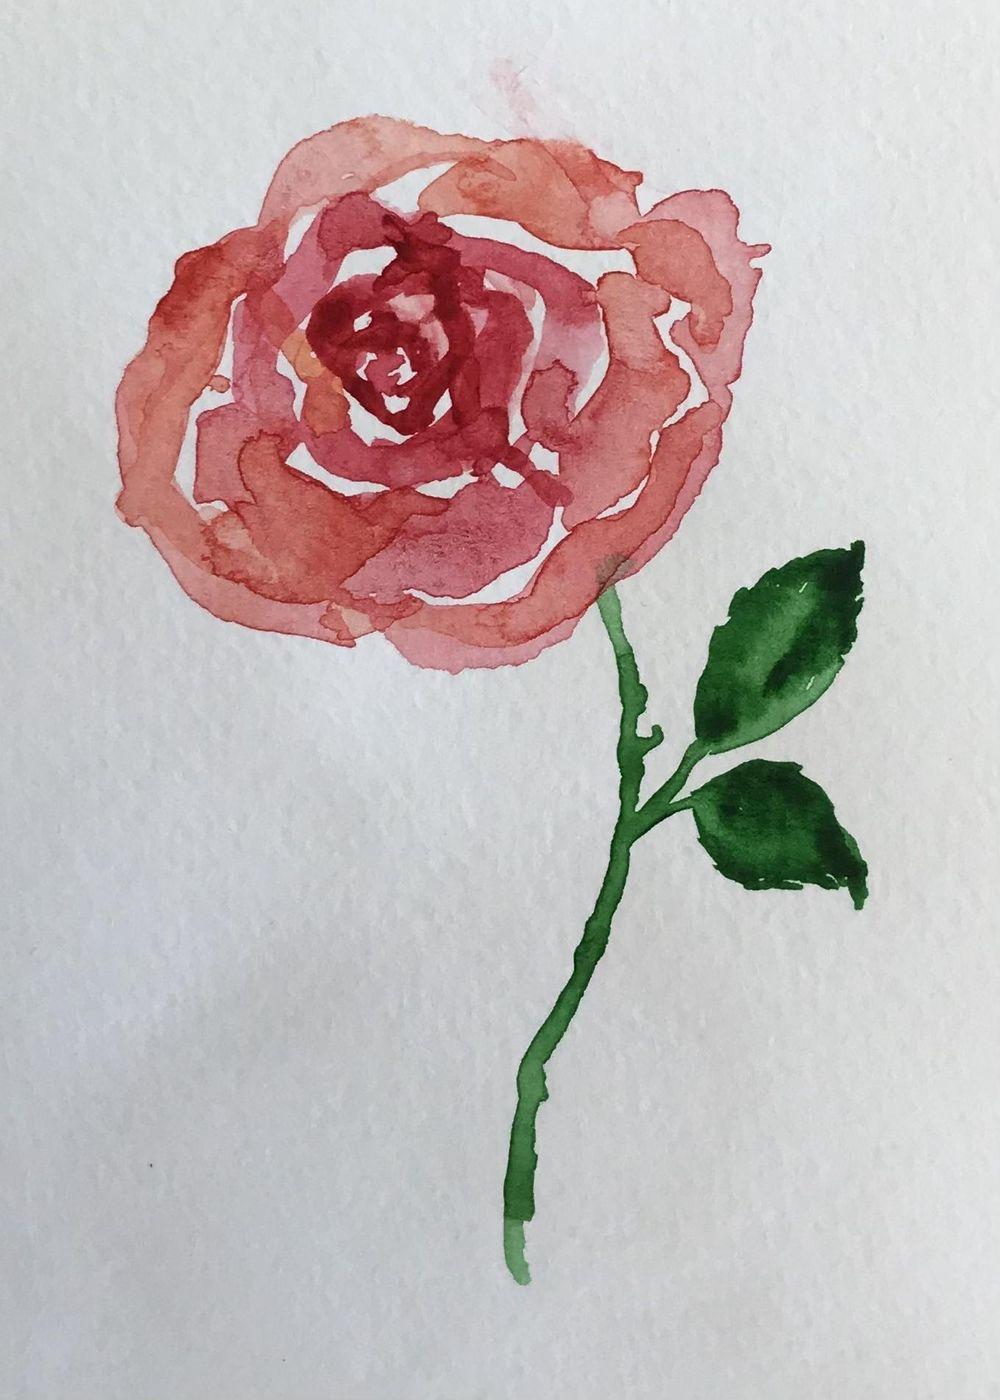 Watercolour roses - image 2 - student project